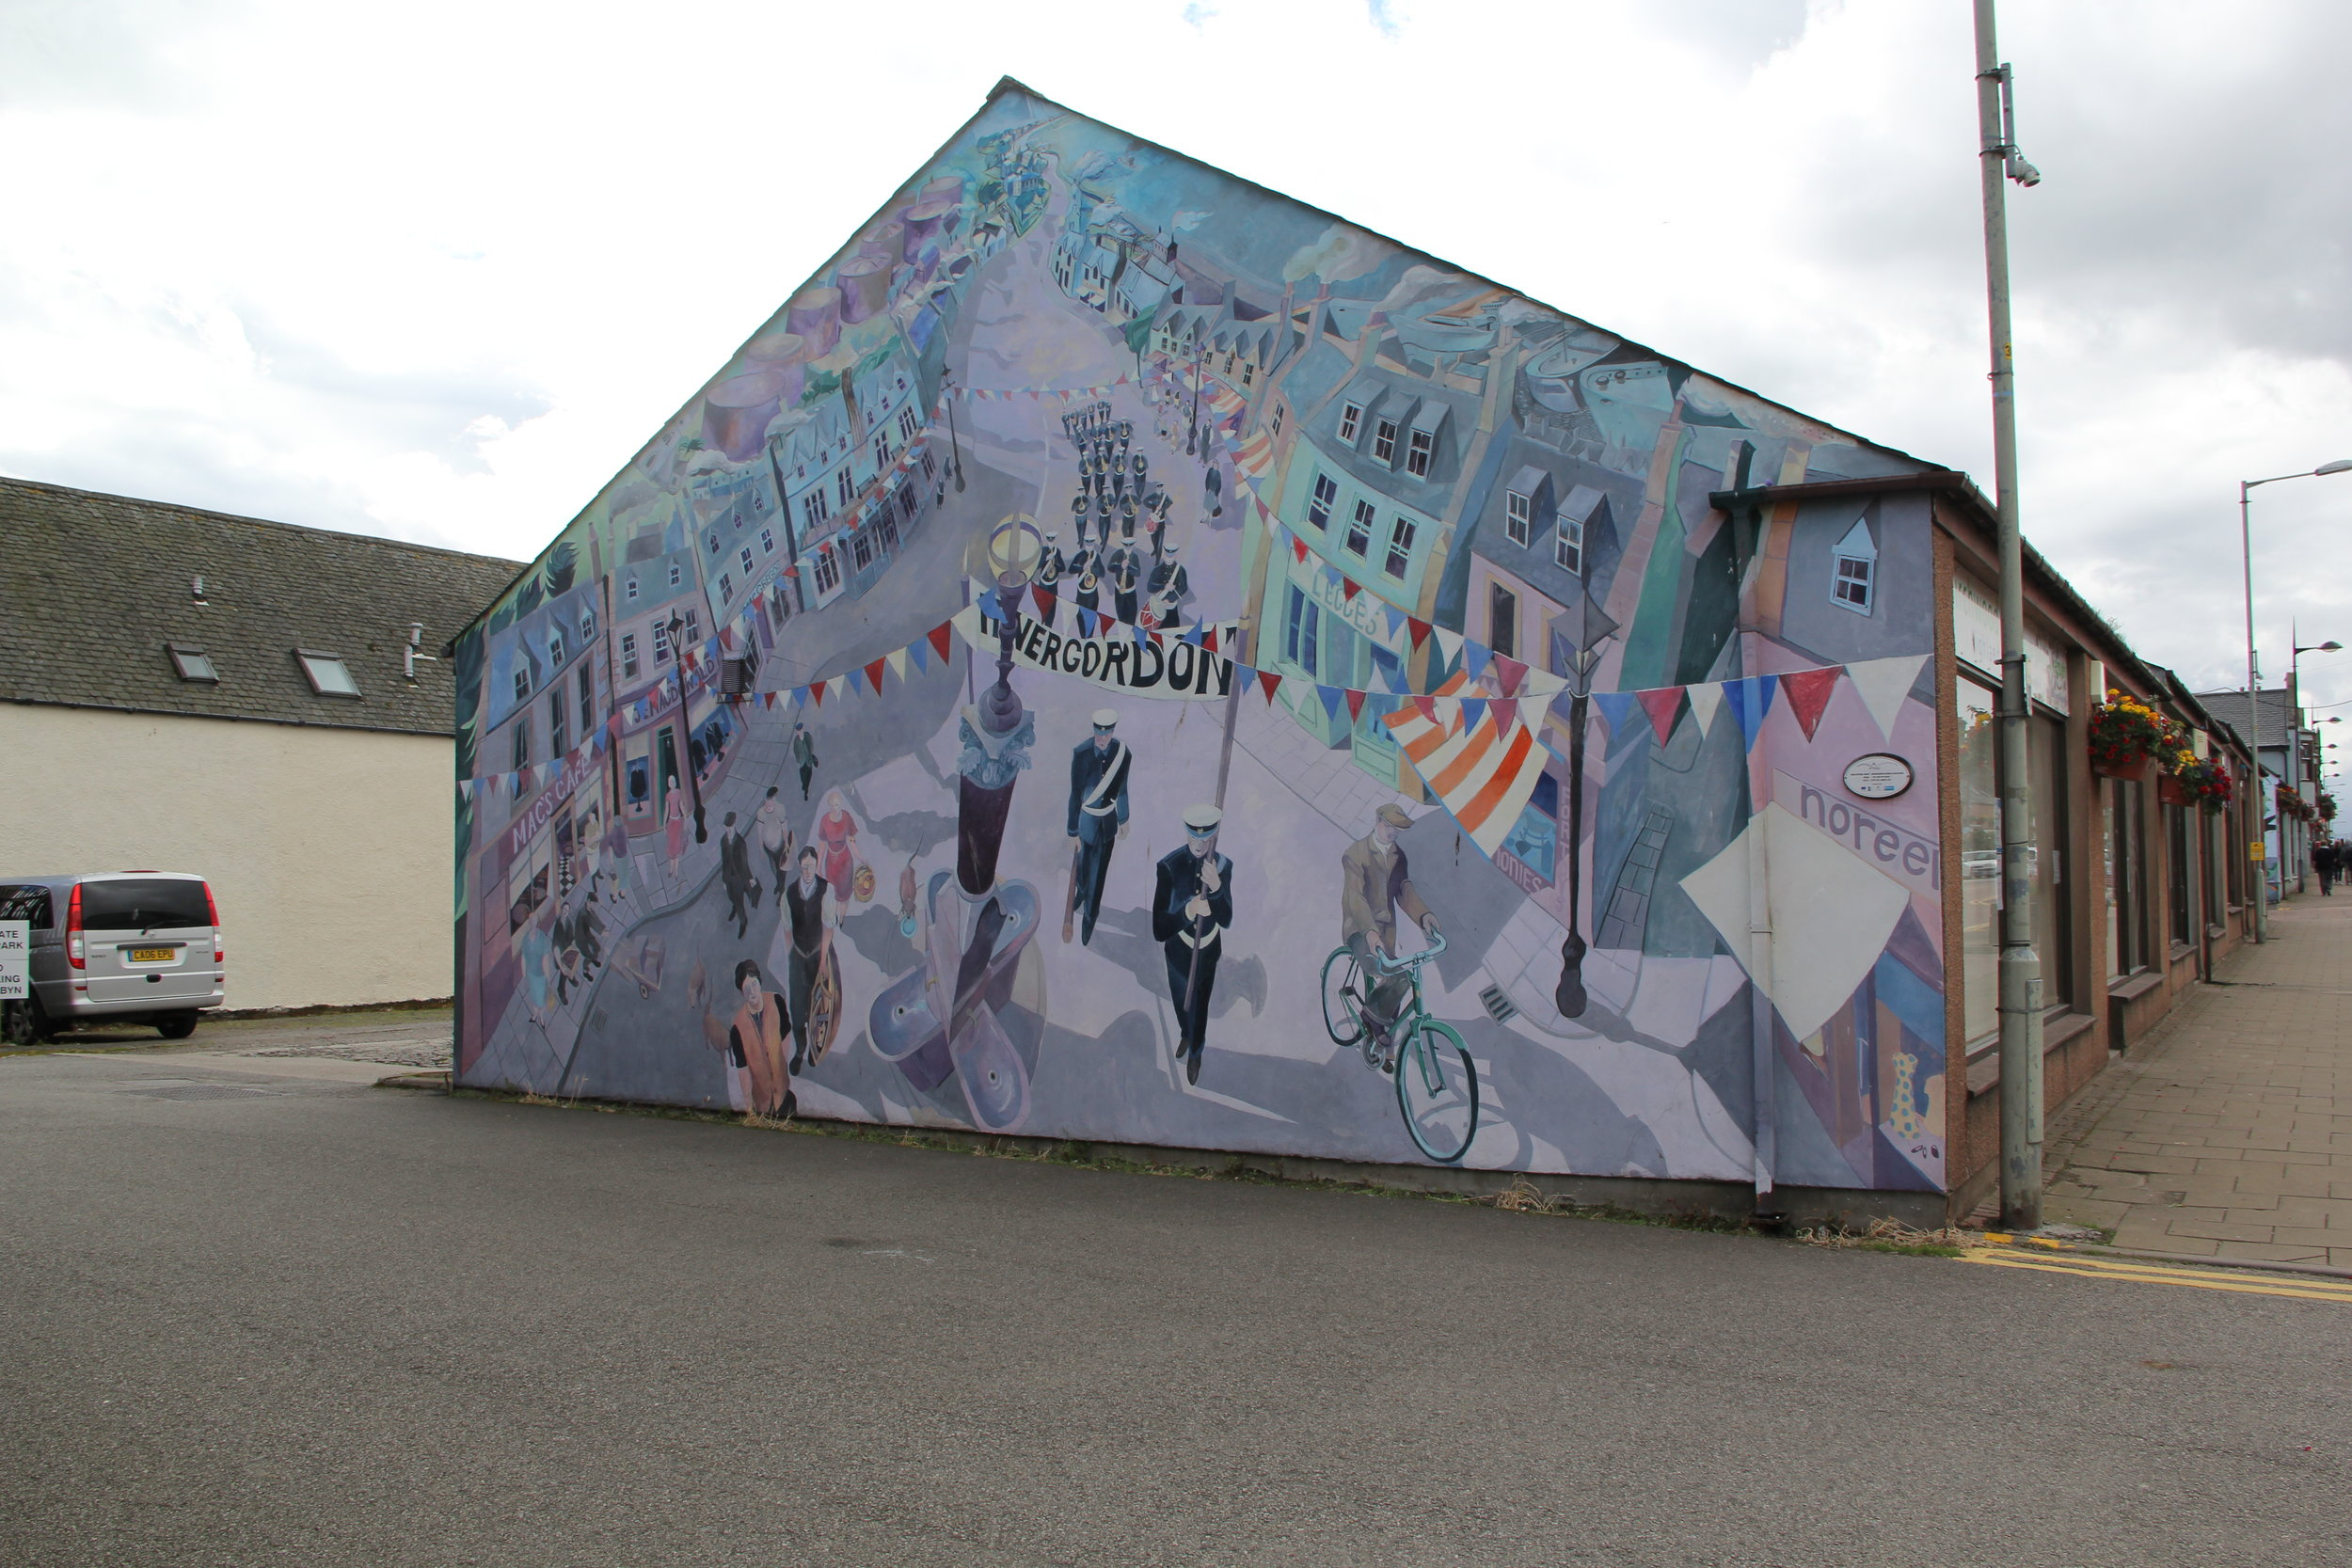 #1 of 9 Invergordon Wall Murals—Parade Time—this remembers the Royal Marines who were stationed here for many years.